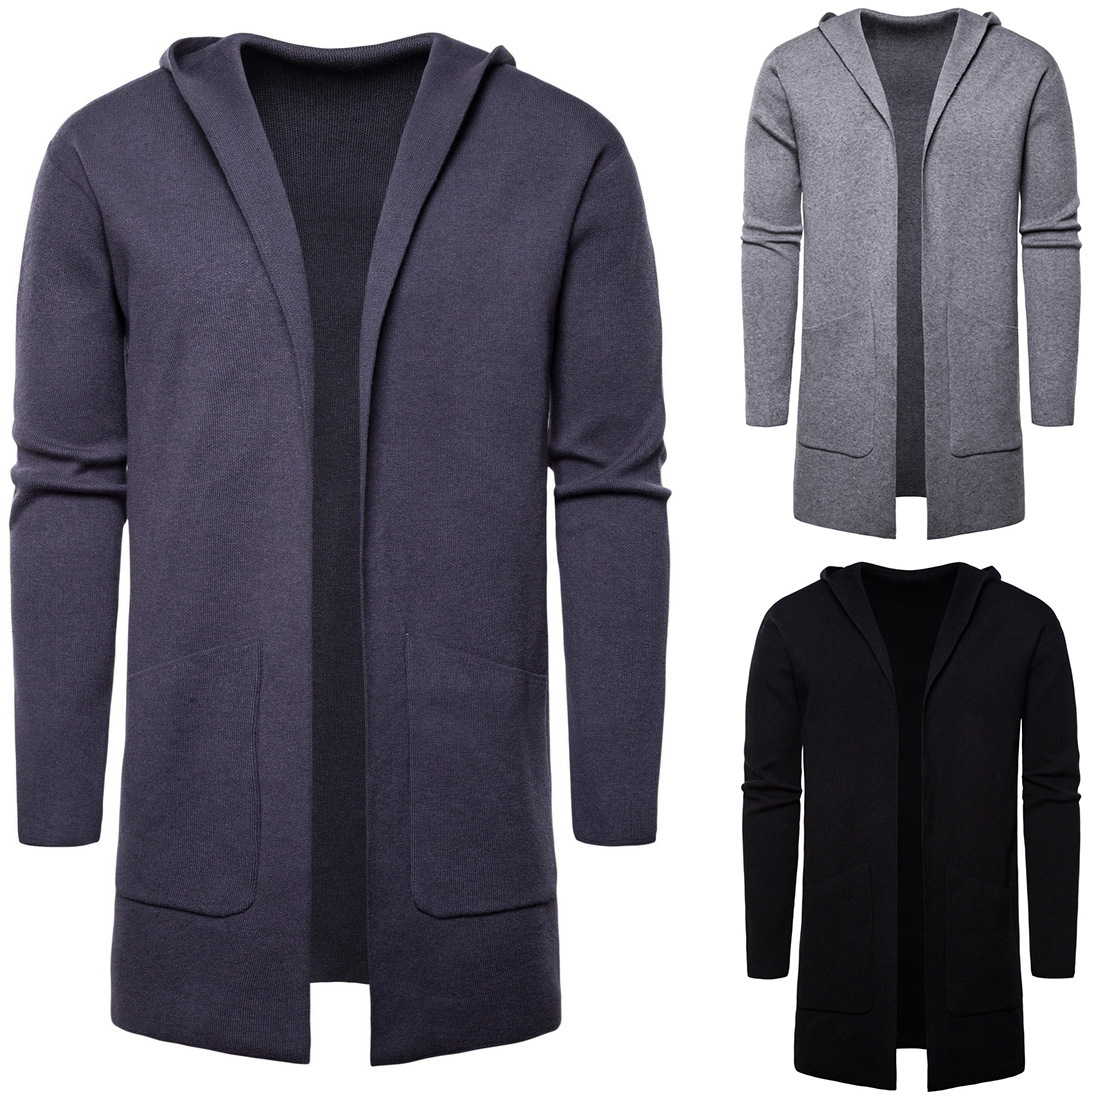 YM027 European And American Spring And Autumn Men's Hooded Cardigan Jacket Men's Clothing Medium And Long Knitted Sweater